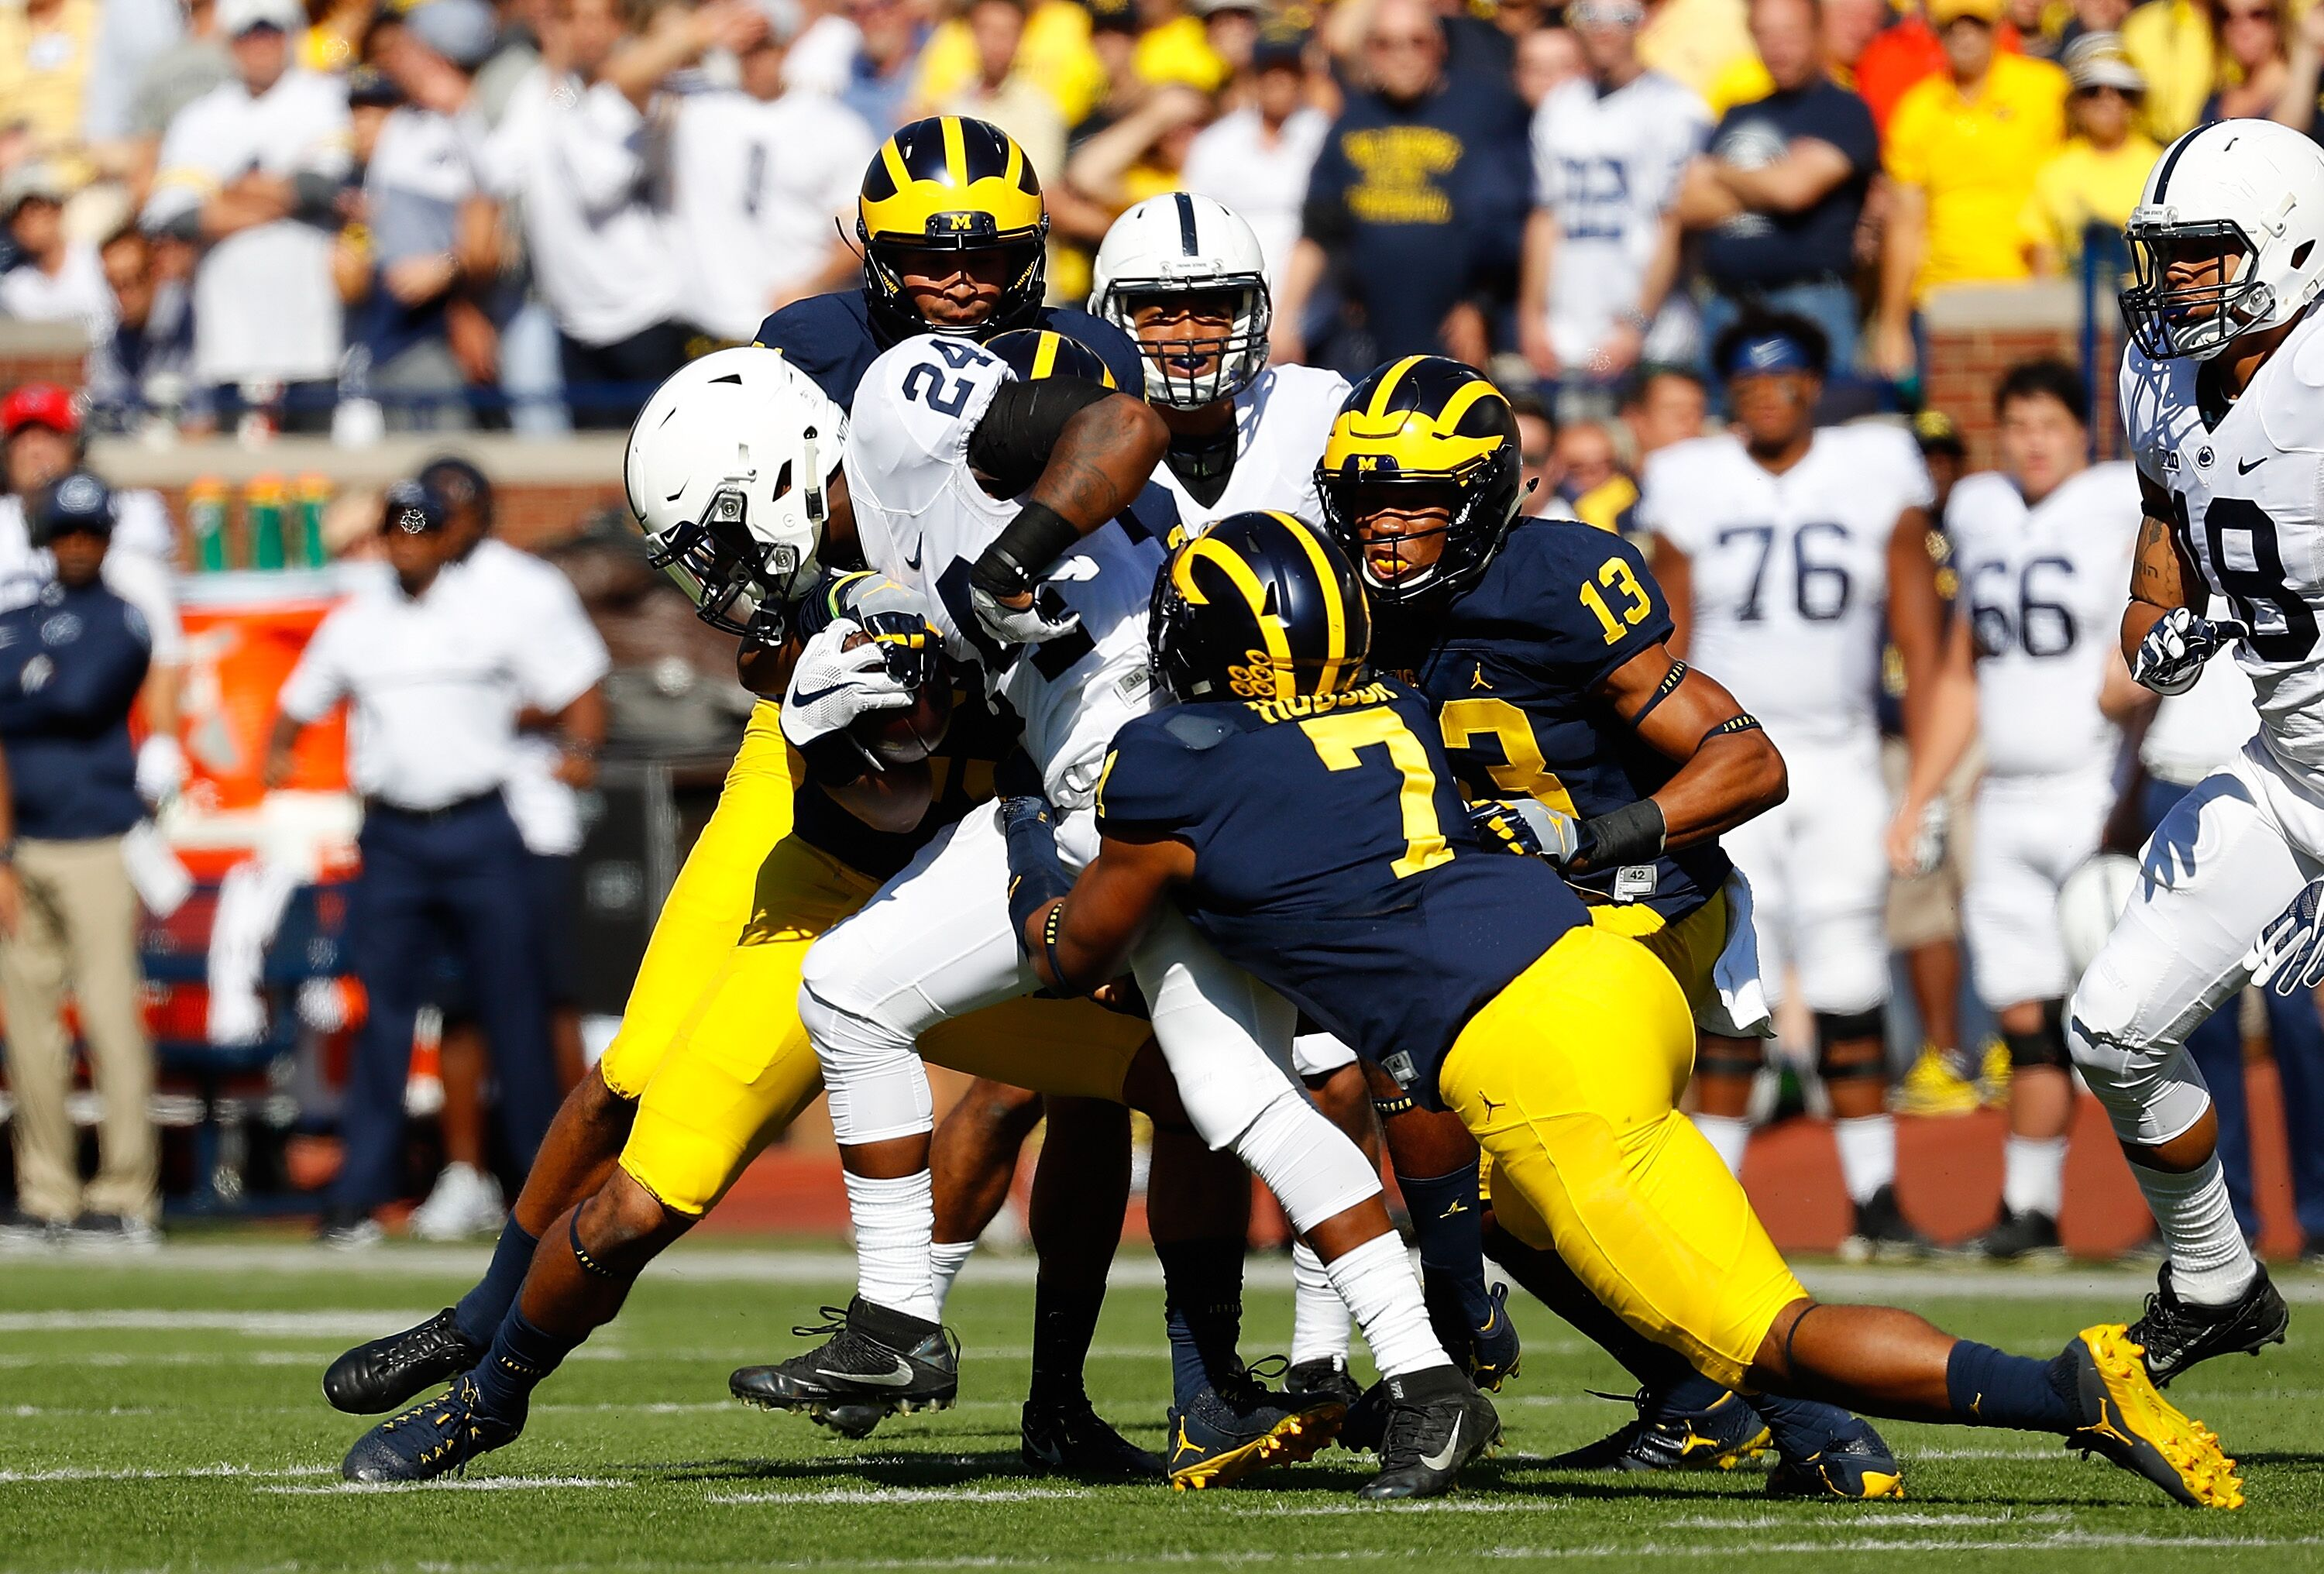 610186816-penn-state-v-michigan.jpg